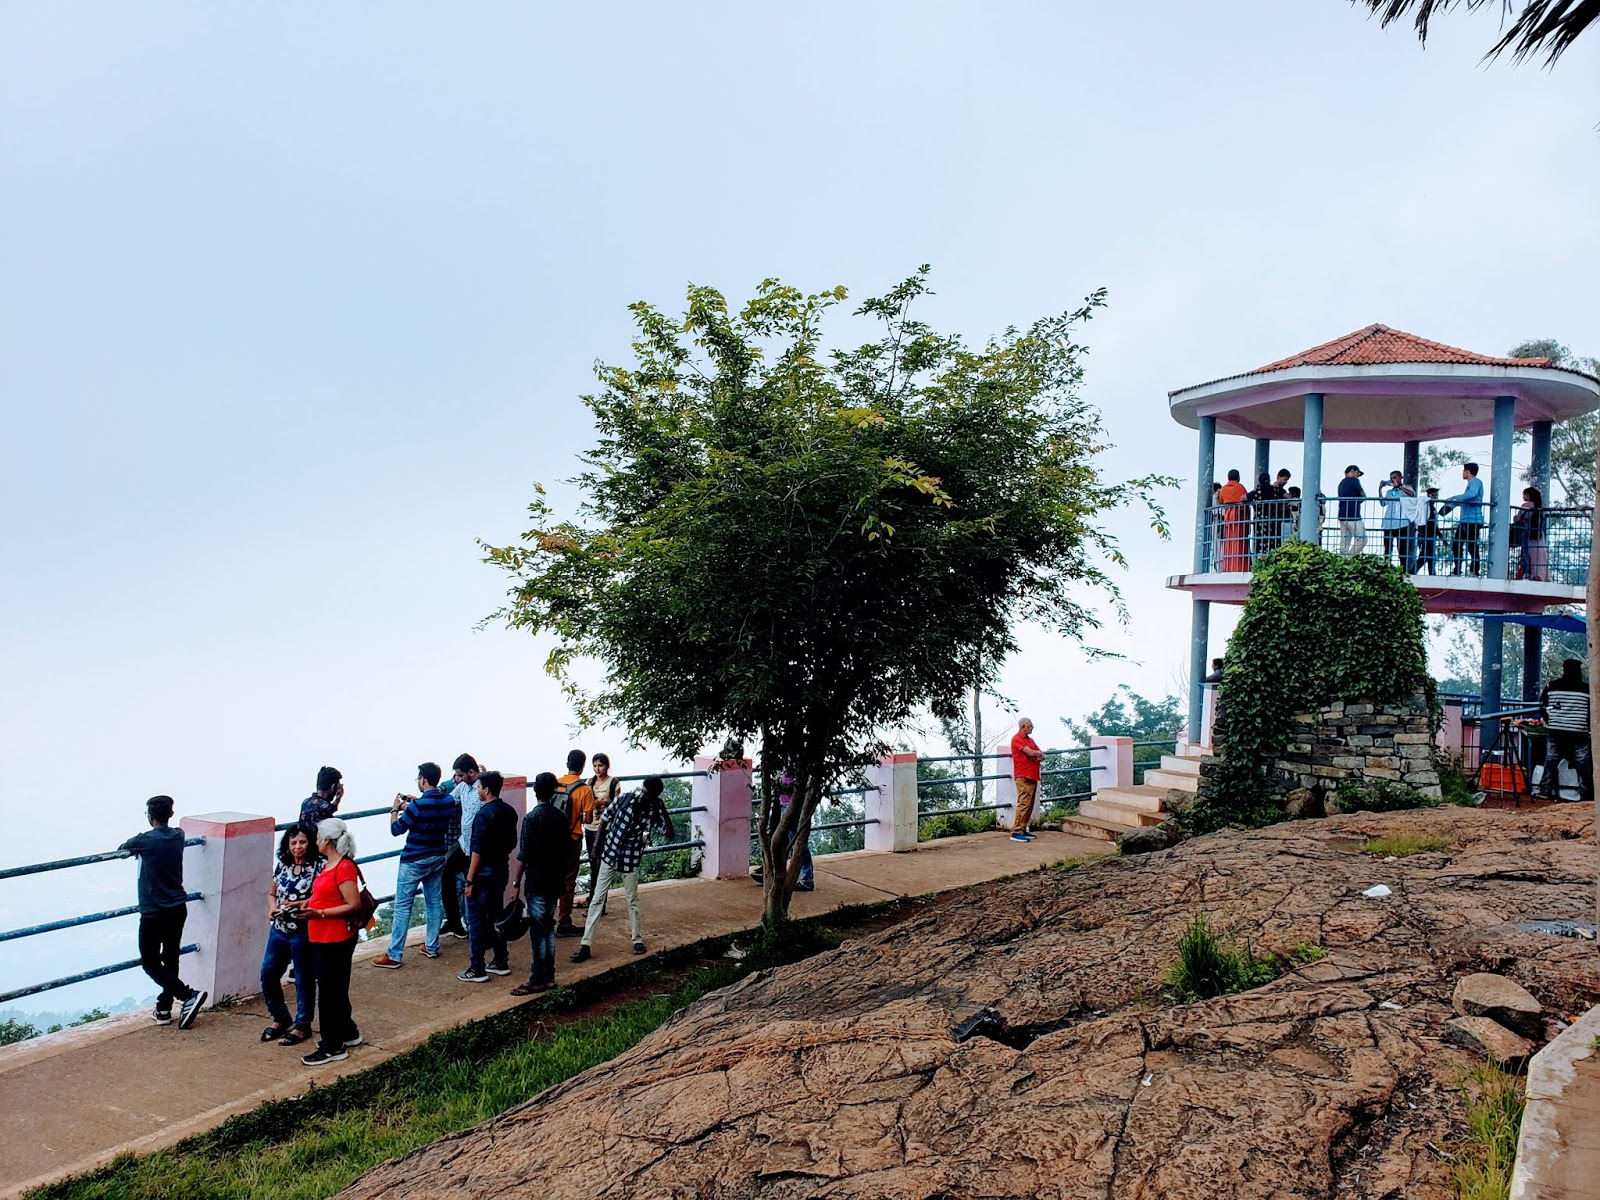 Pagoda viewpoint, Yercaud